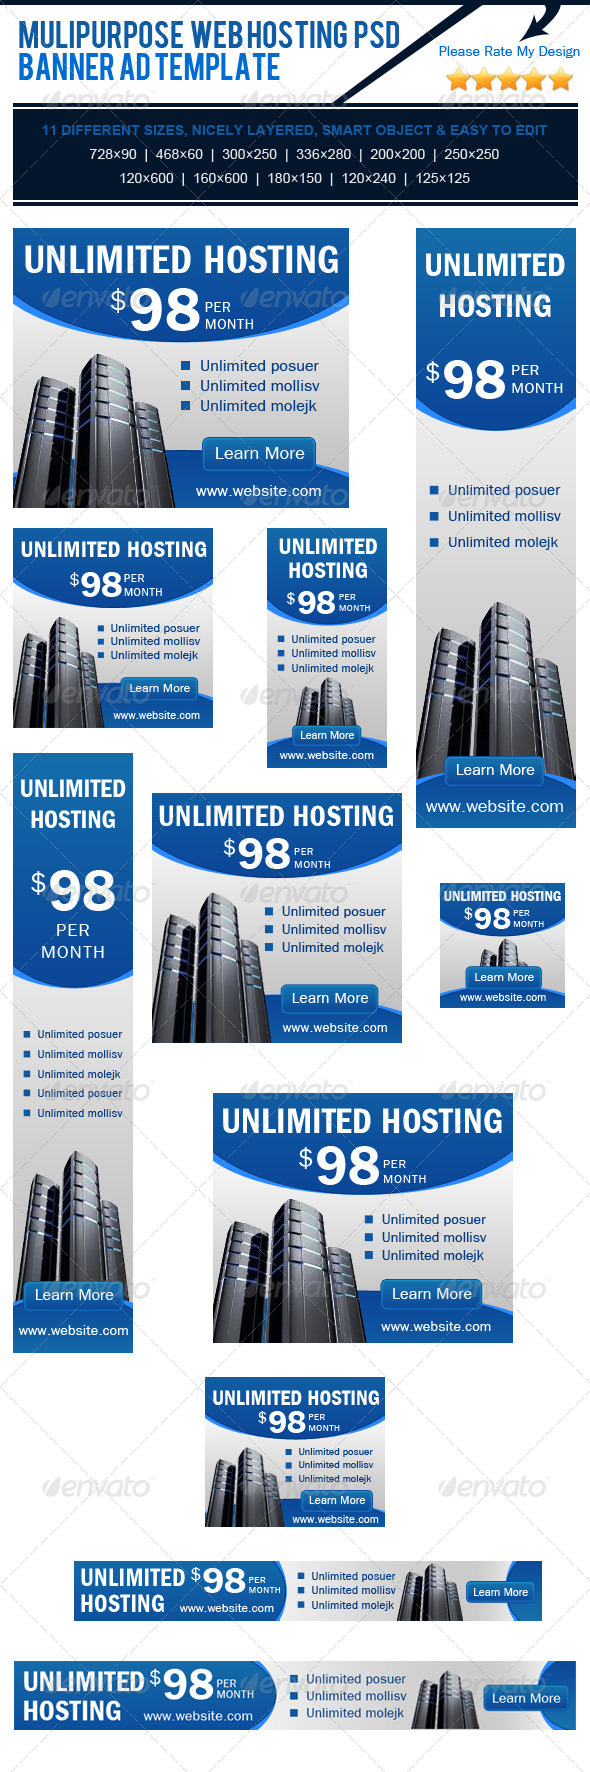 GraphicRiver Multipurpose Web Hosting PSD Banner Ad Template 4183819